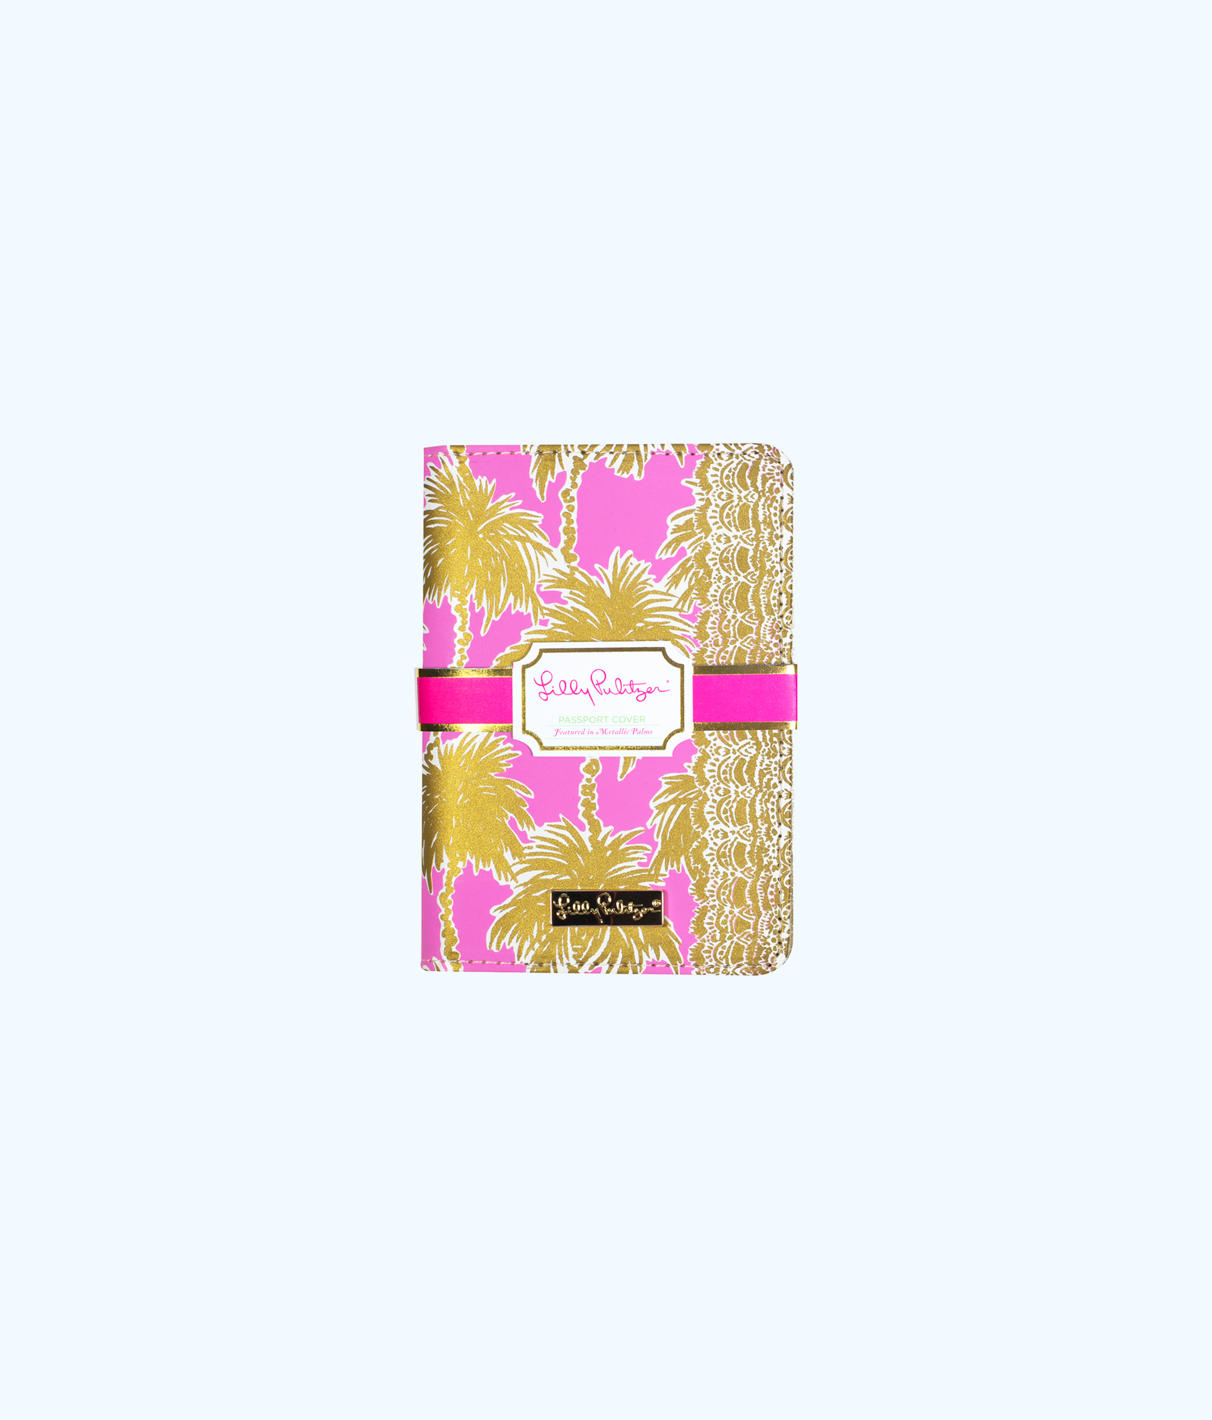 Lilly Pulitzer Lilly Pulitzer Passport Cover